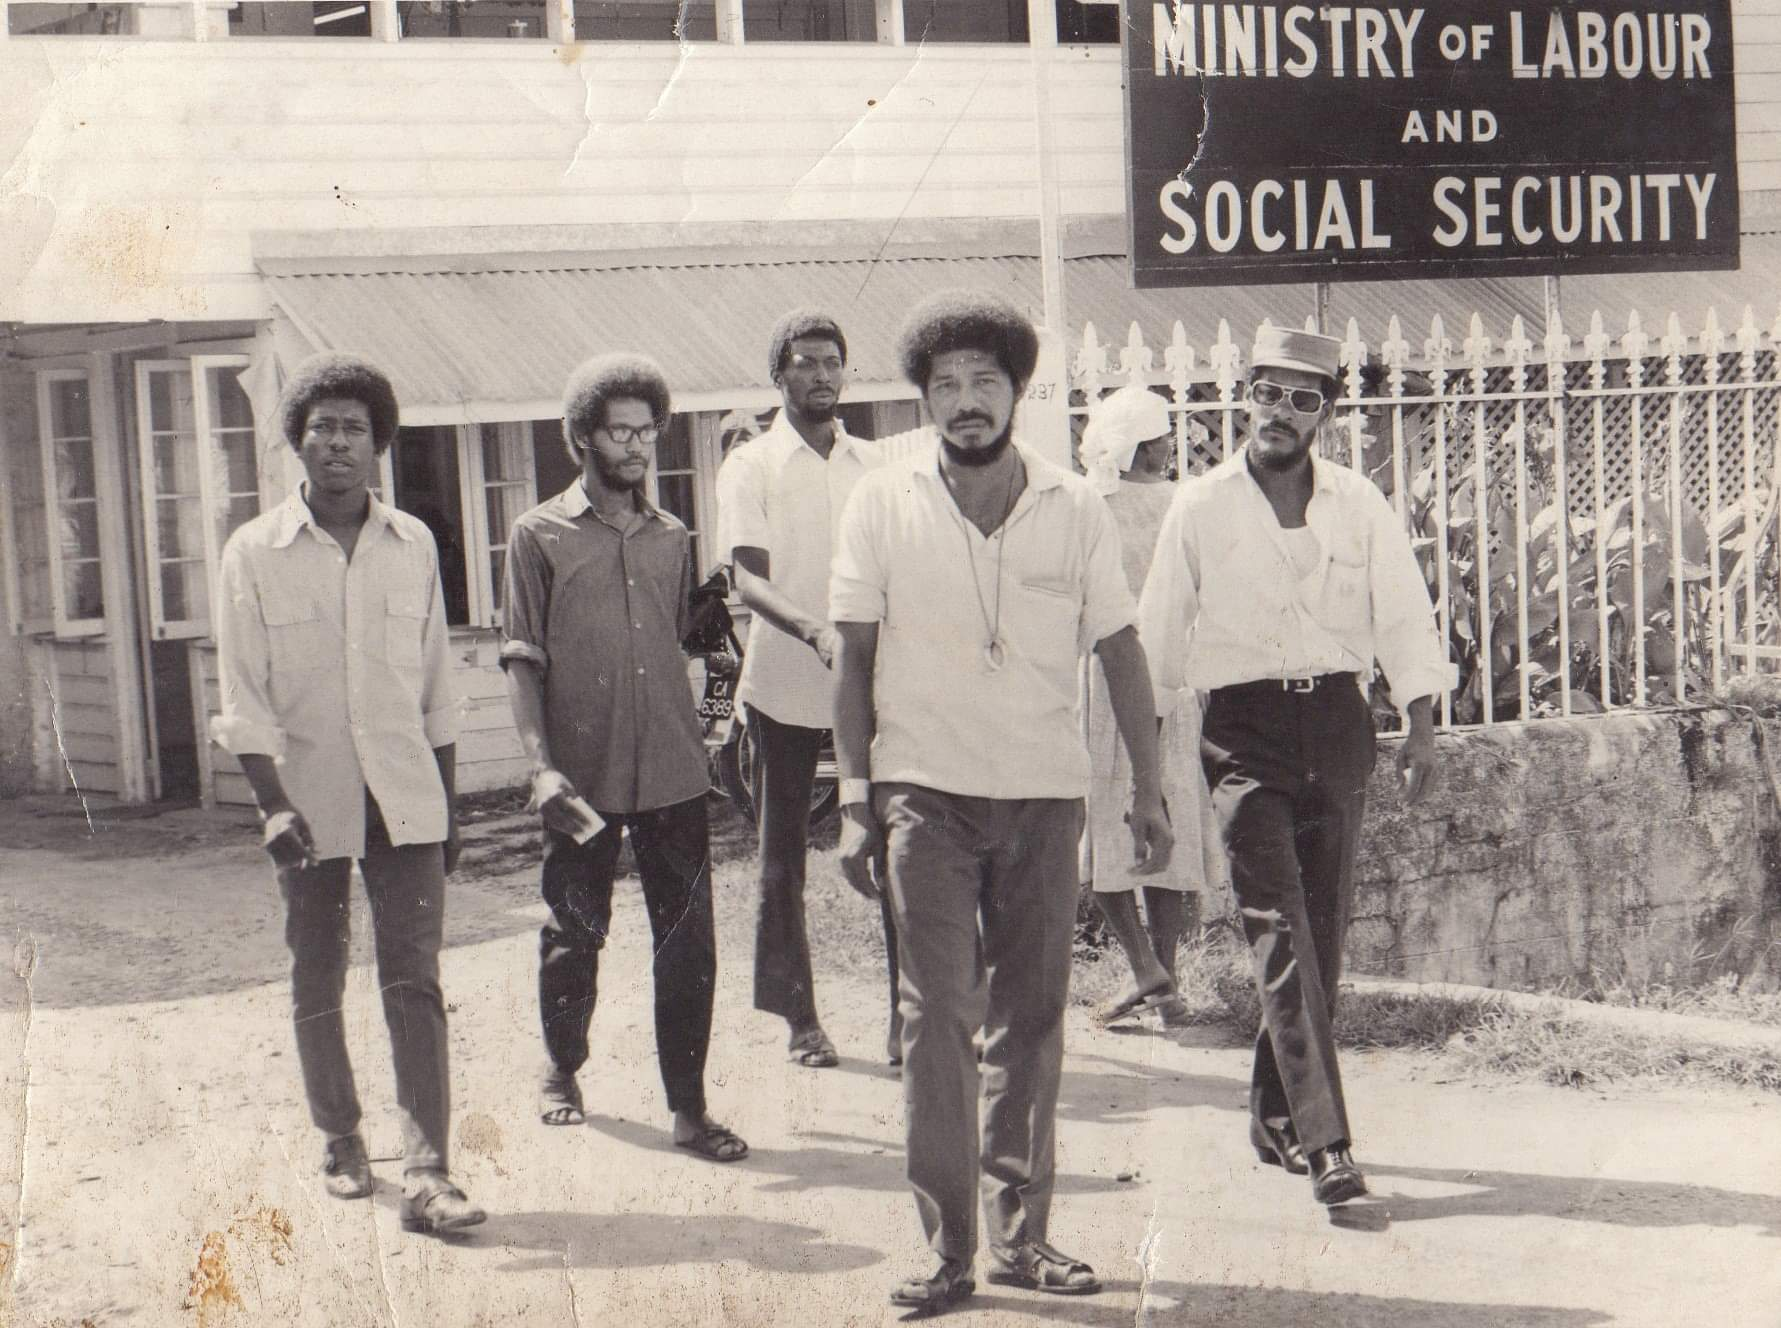 Walter_rodney_and_w.p.a_members_exit_the_ministry_of_labour___social_security__guyana_-_1970s.-